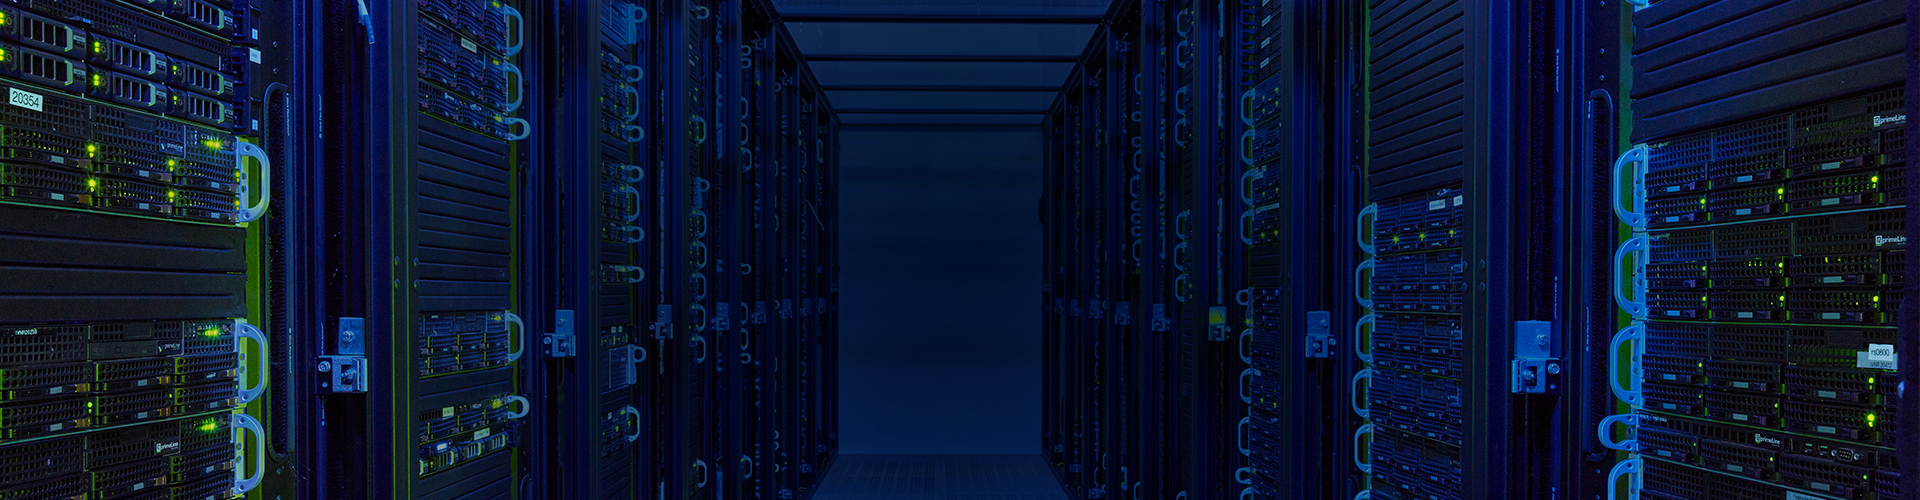 centron Blog Datacenter